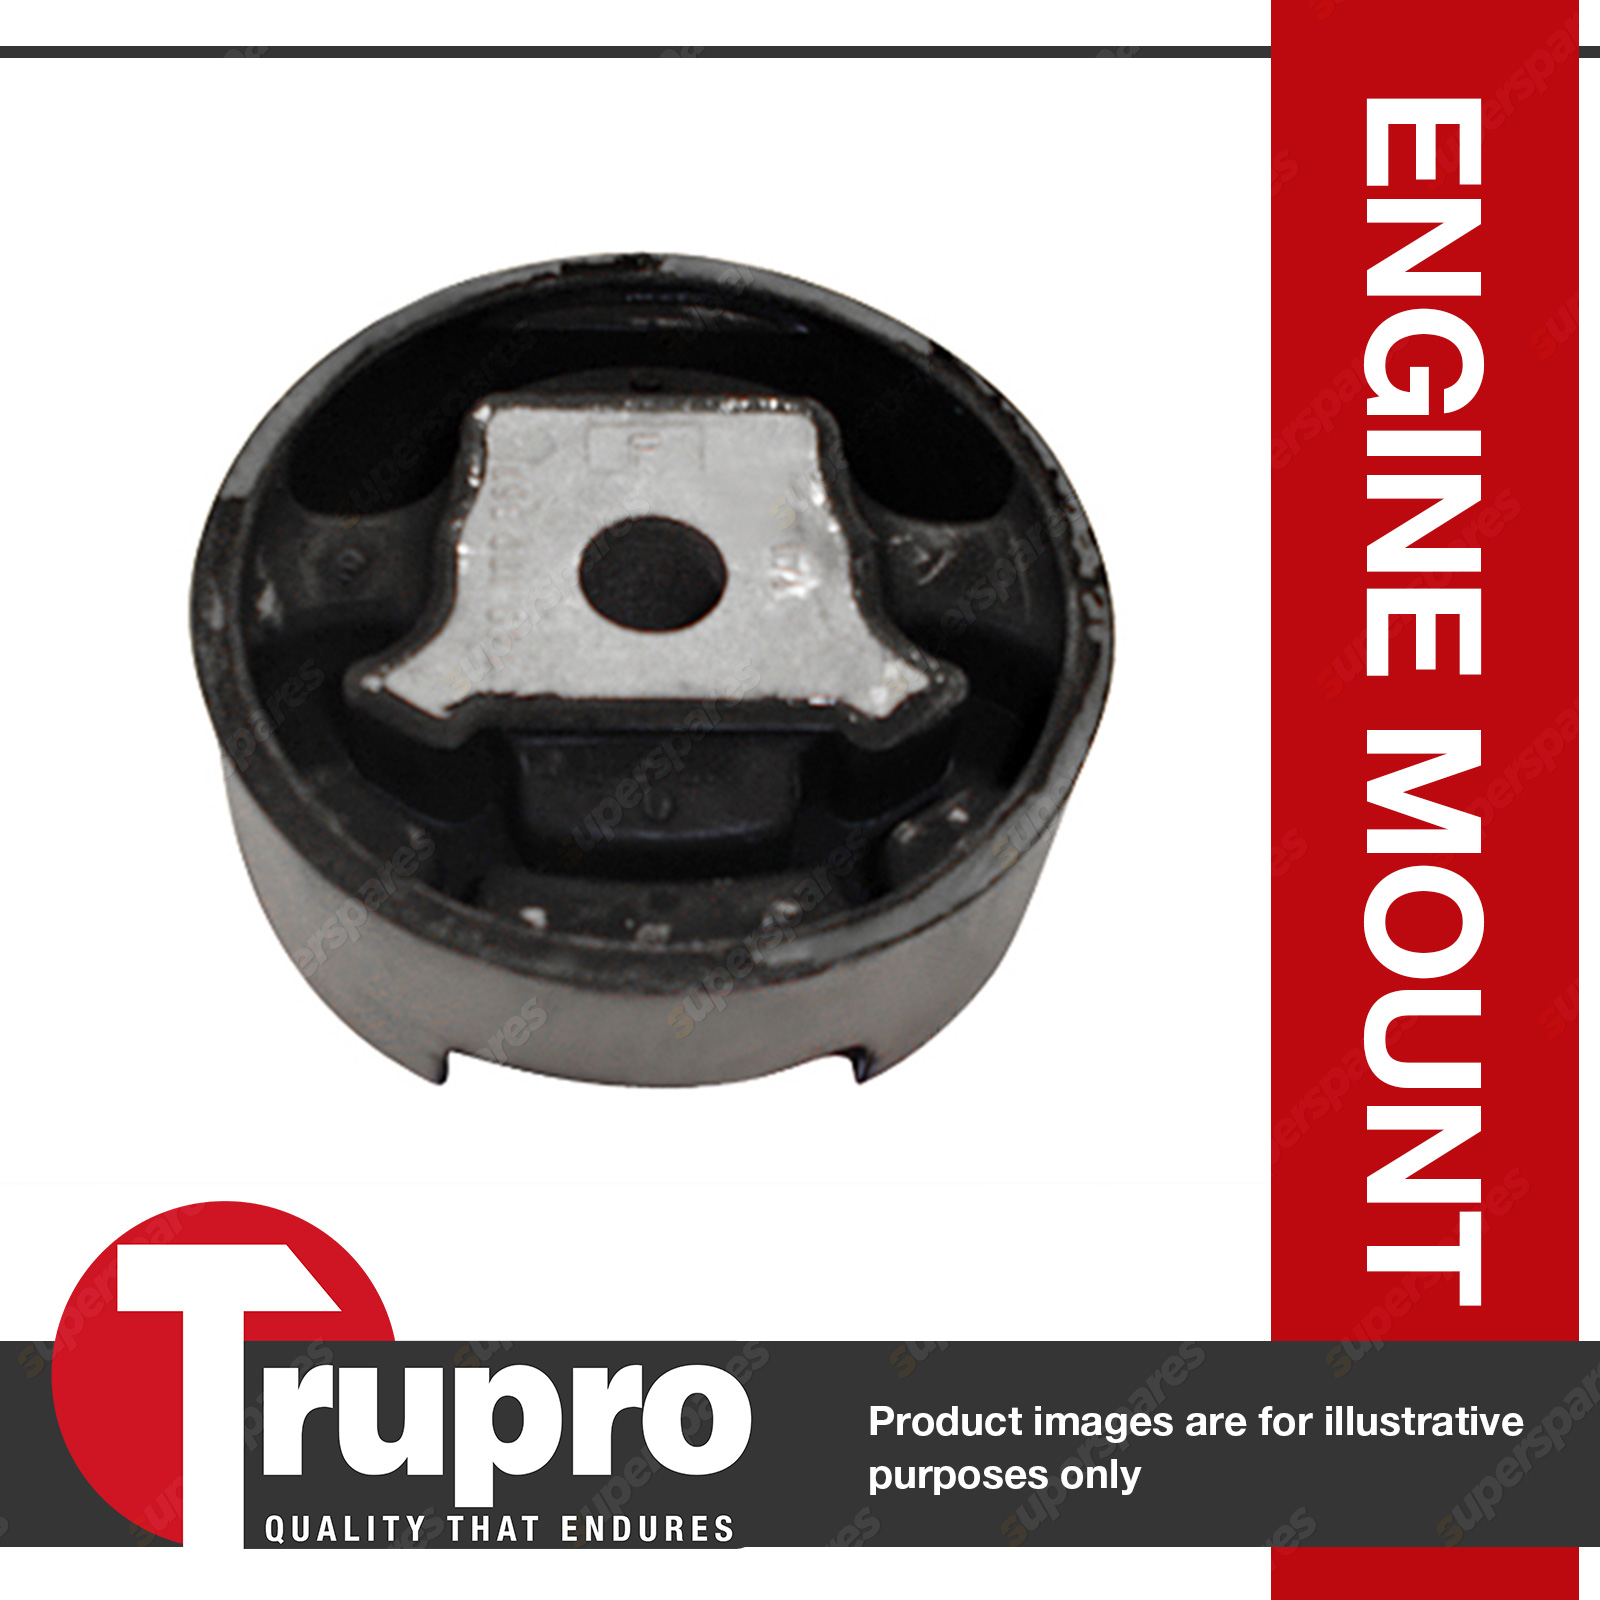 details about rear lower engine mount for vw tiguan 5n various cavd cthd  auto manual